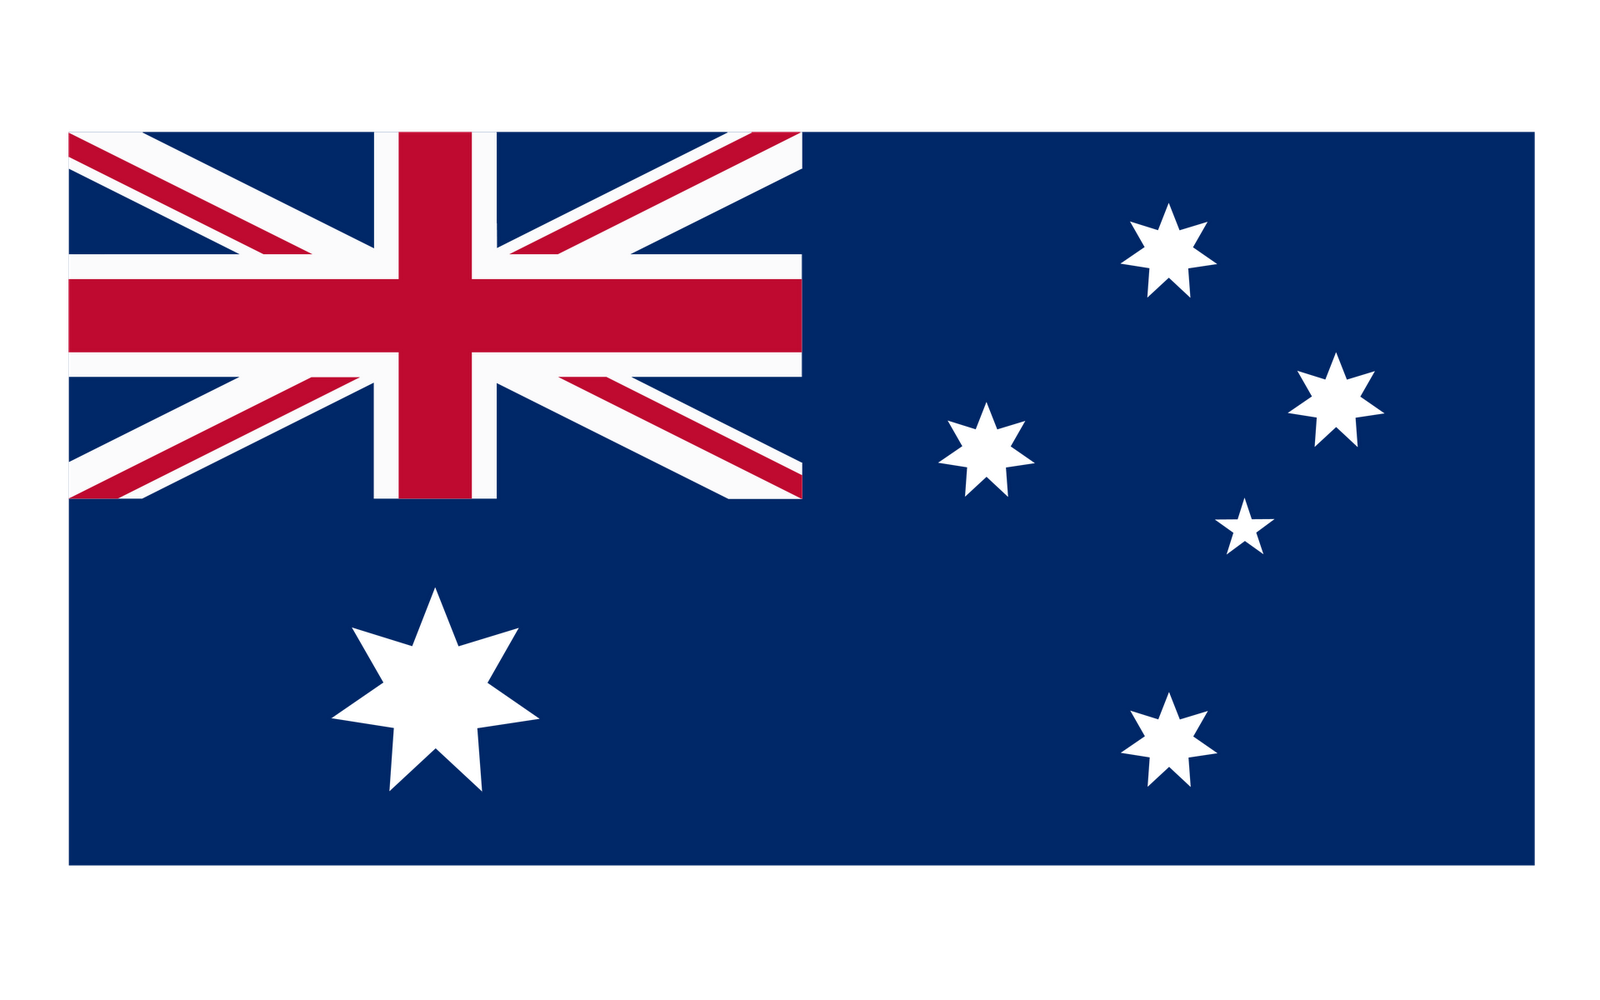 Flag World Australia Flags Wallpaper Hd